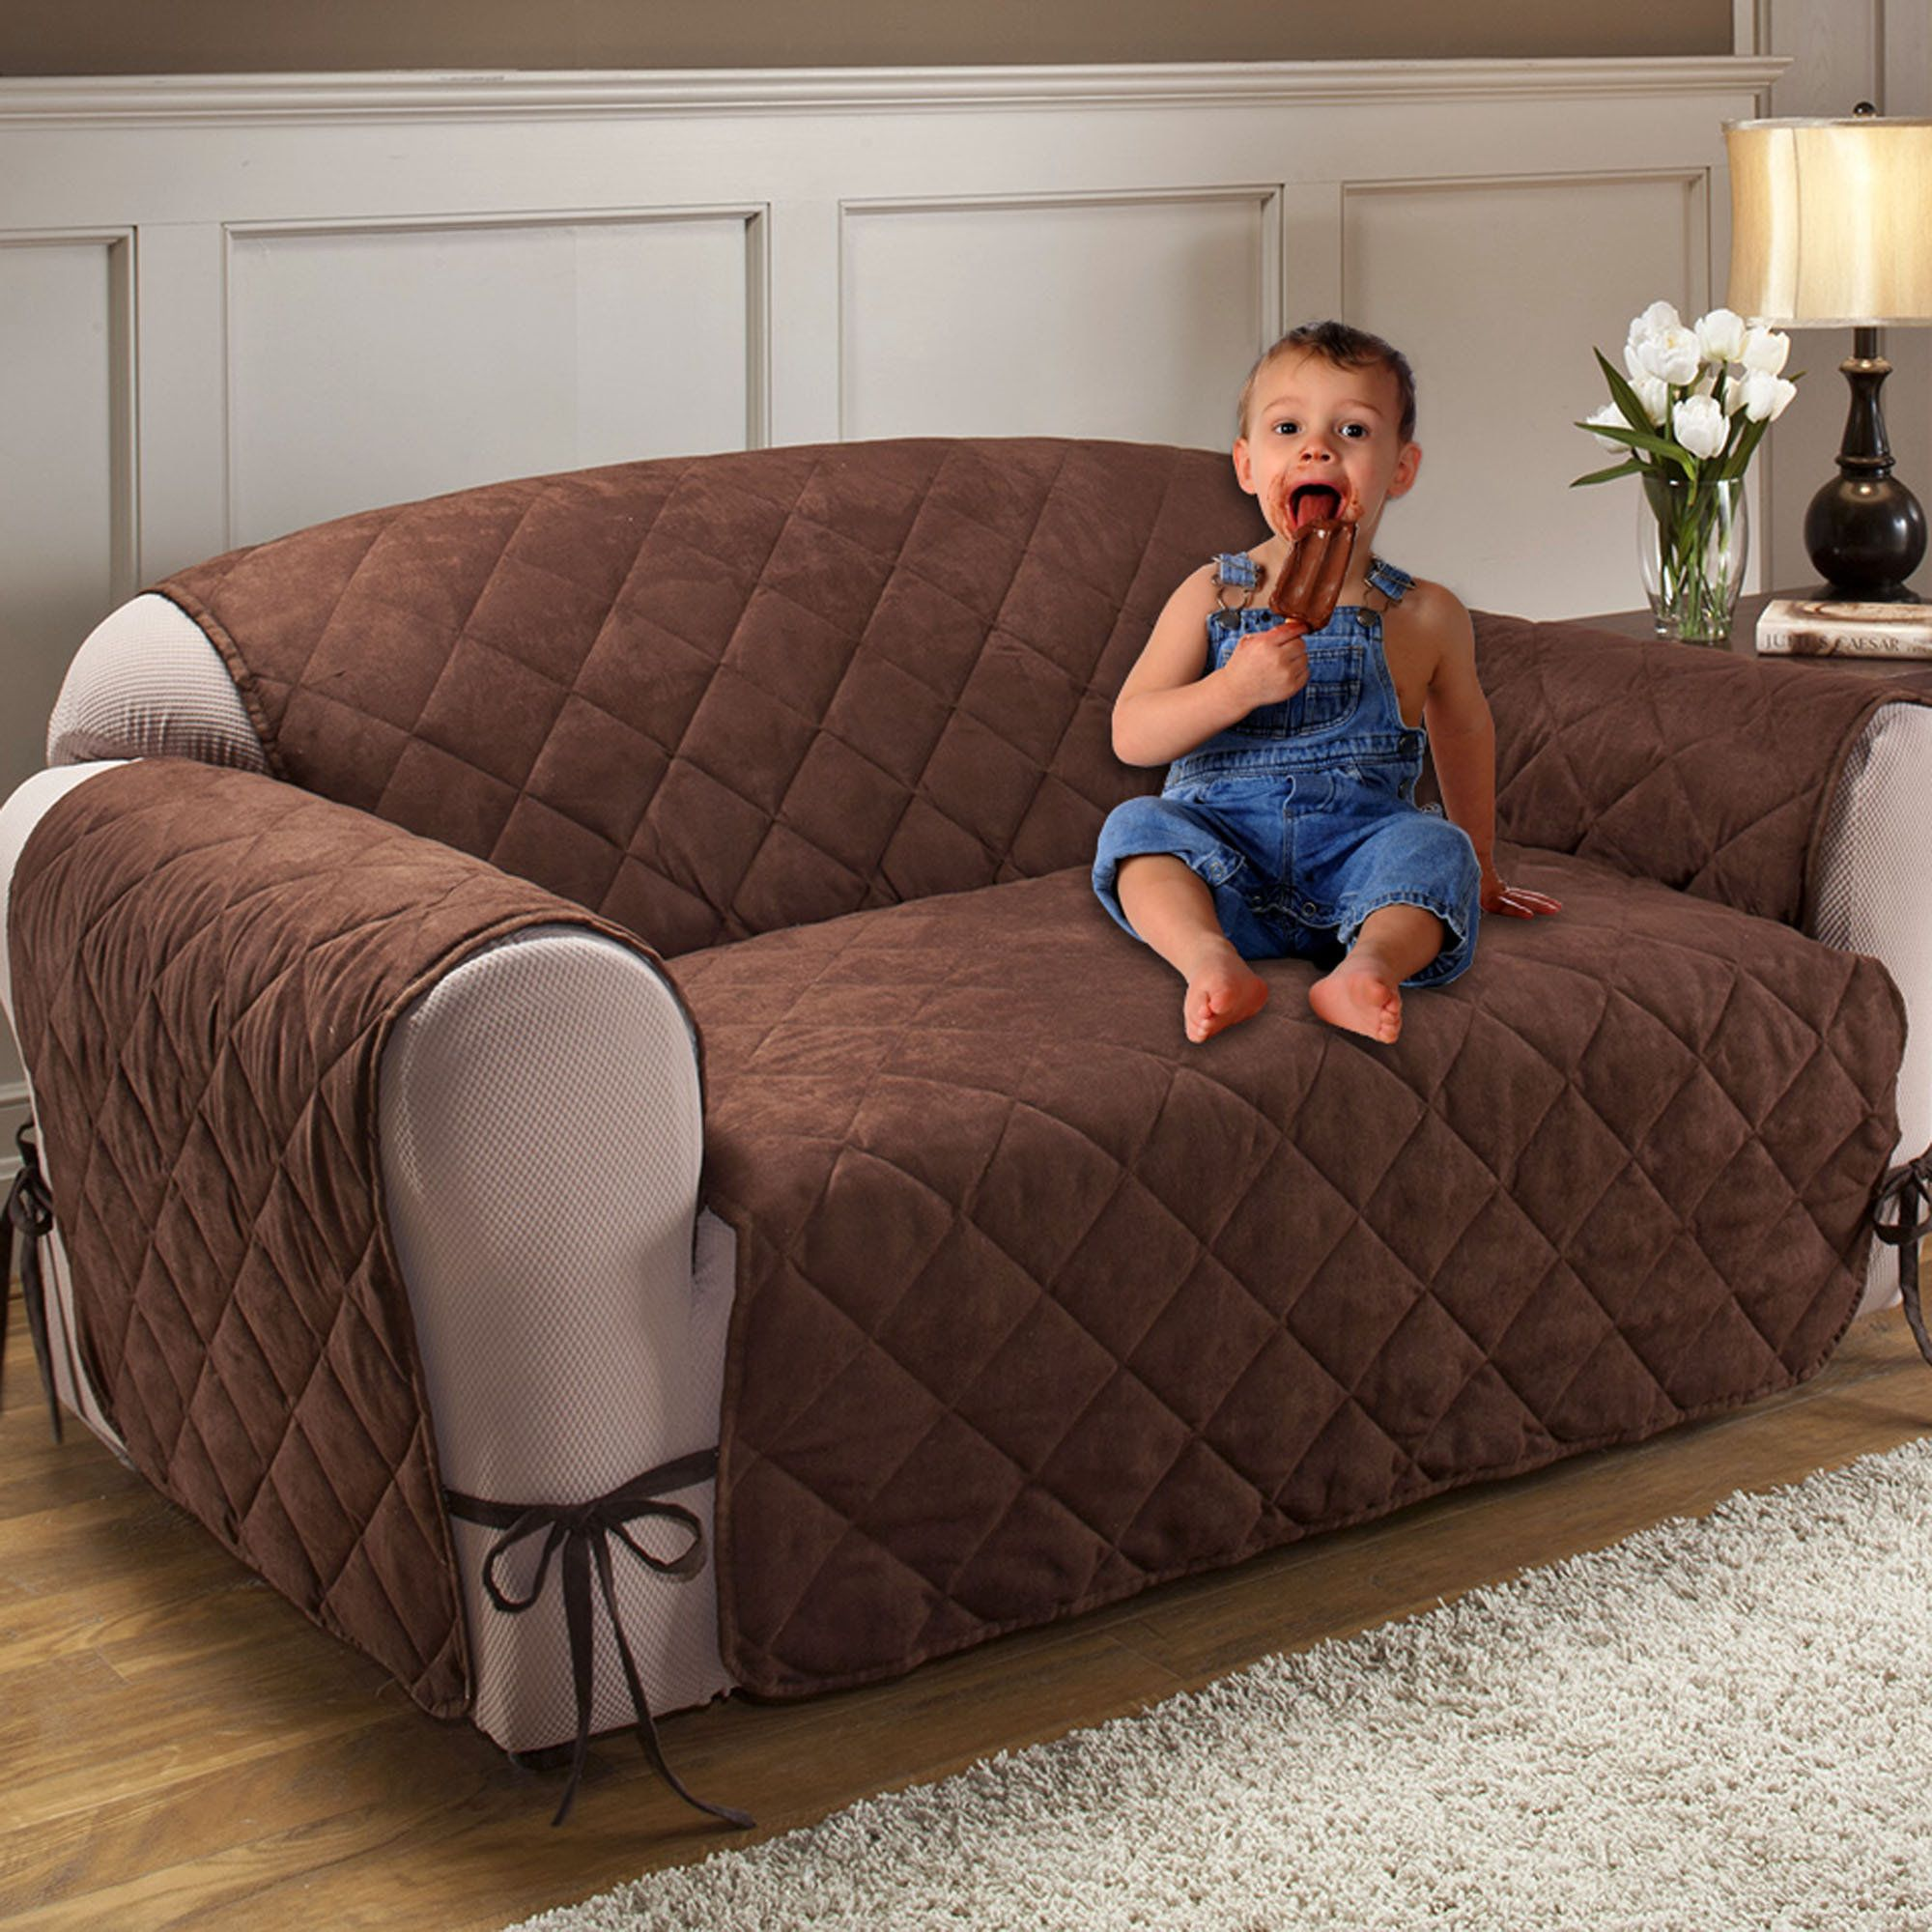 quilted embroidery sectional sofa couch slipcovers furniture protector cotton narrow depth corner sofas microfiber total cover with ties